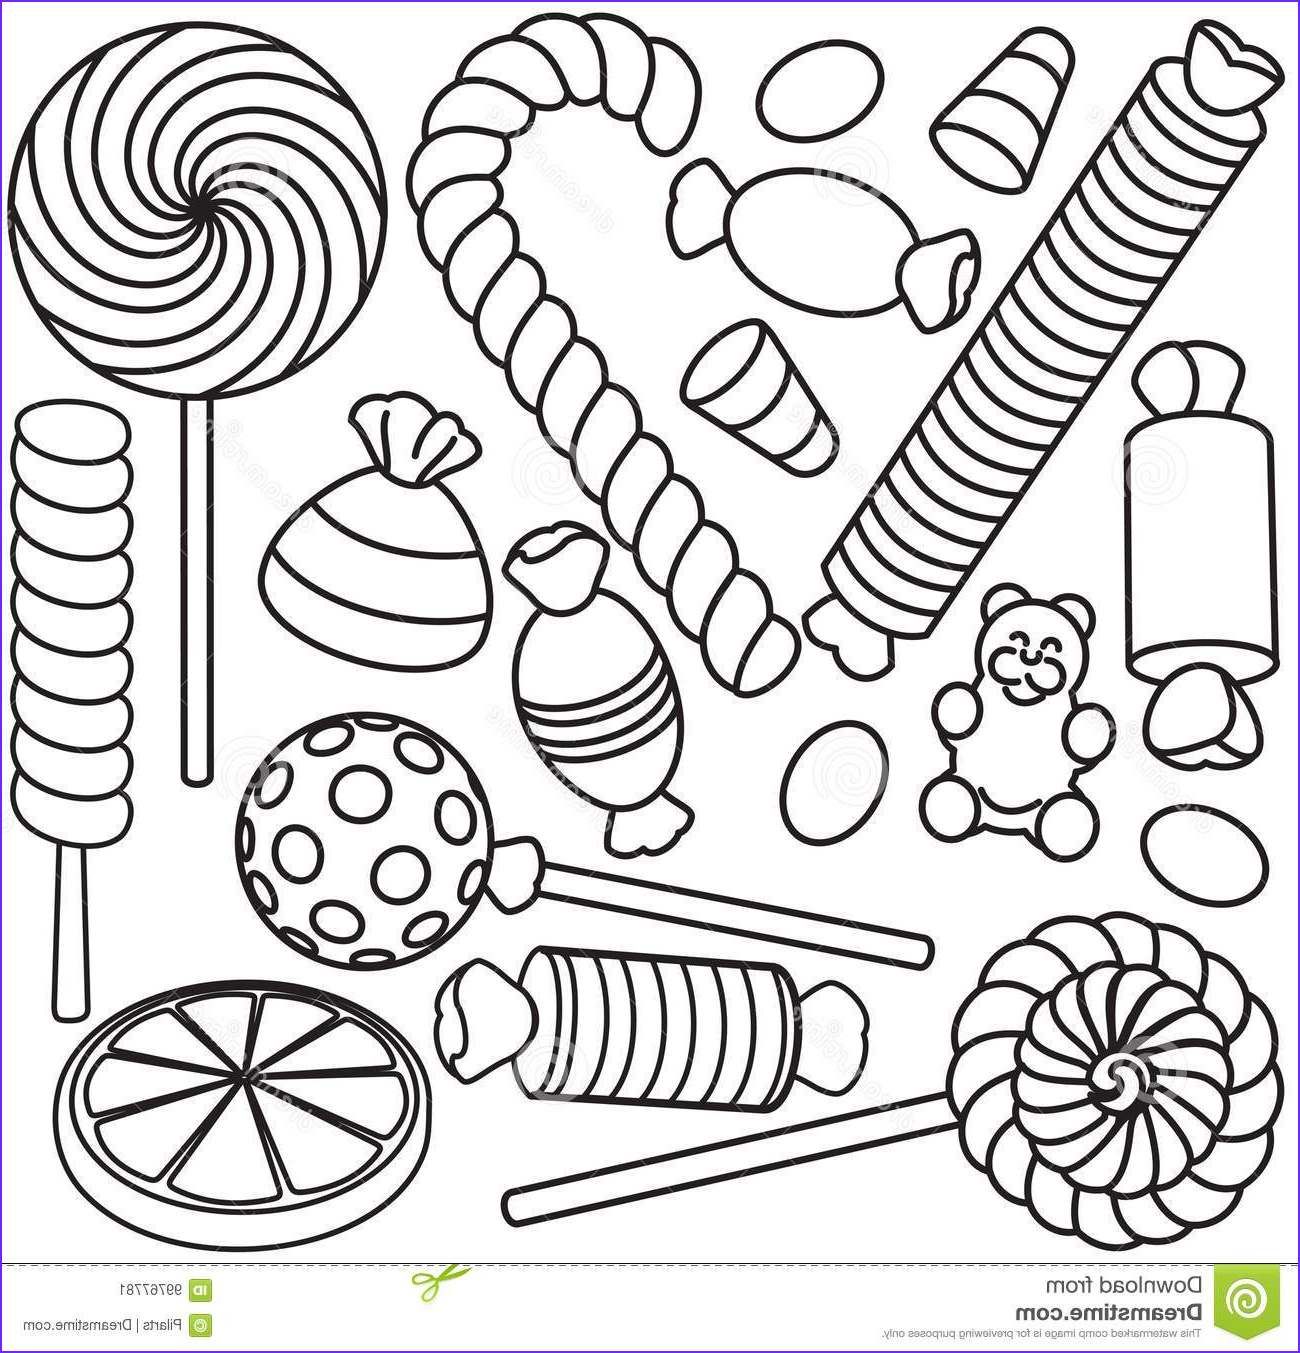 Sweets Coloring Pages Unique Stock Set Doodle Sketch Sweets and Candy Stock Vector